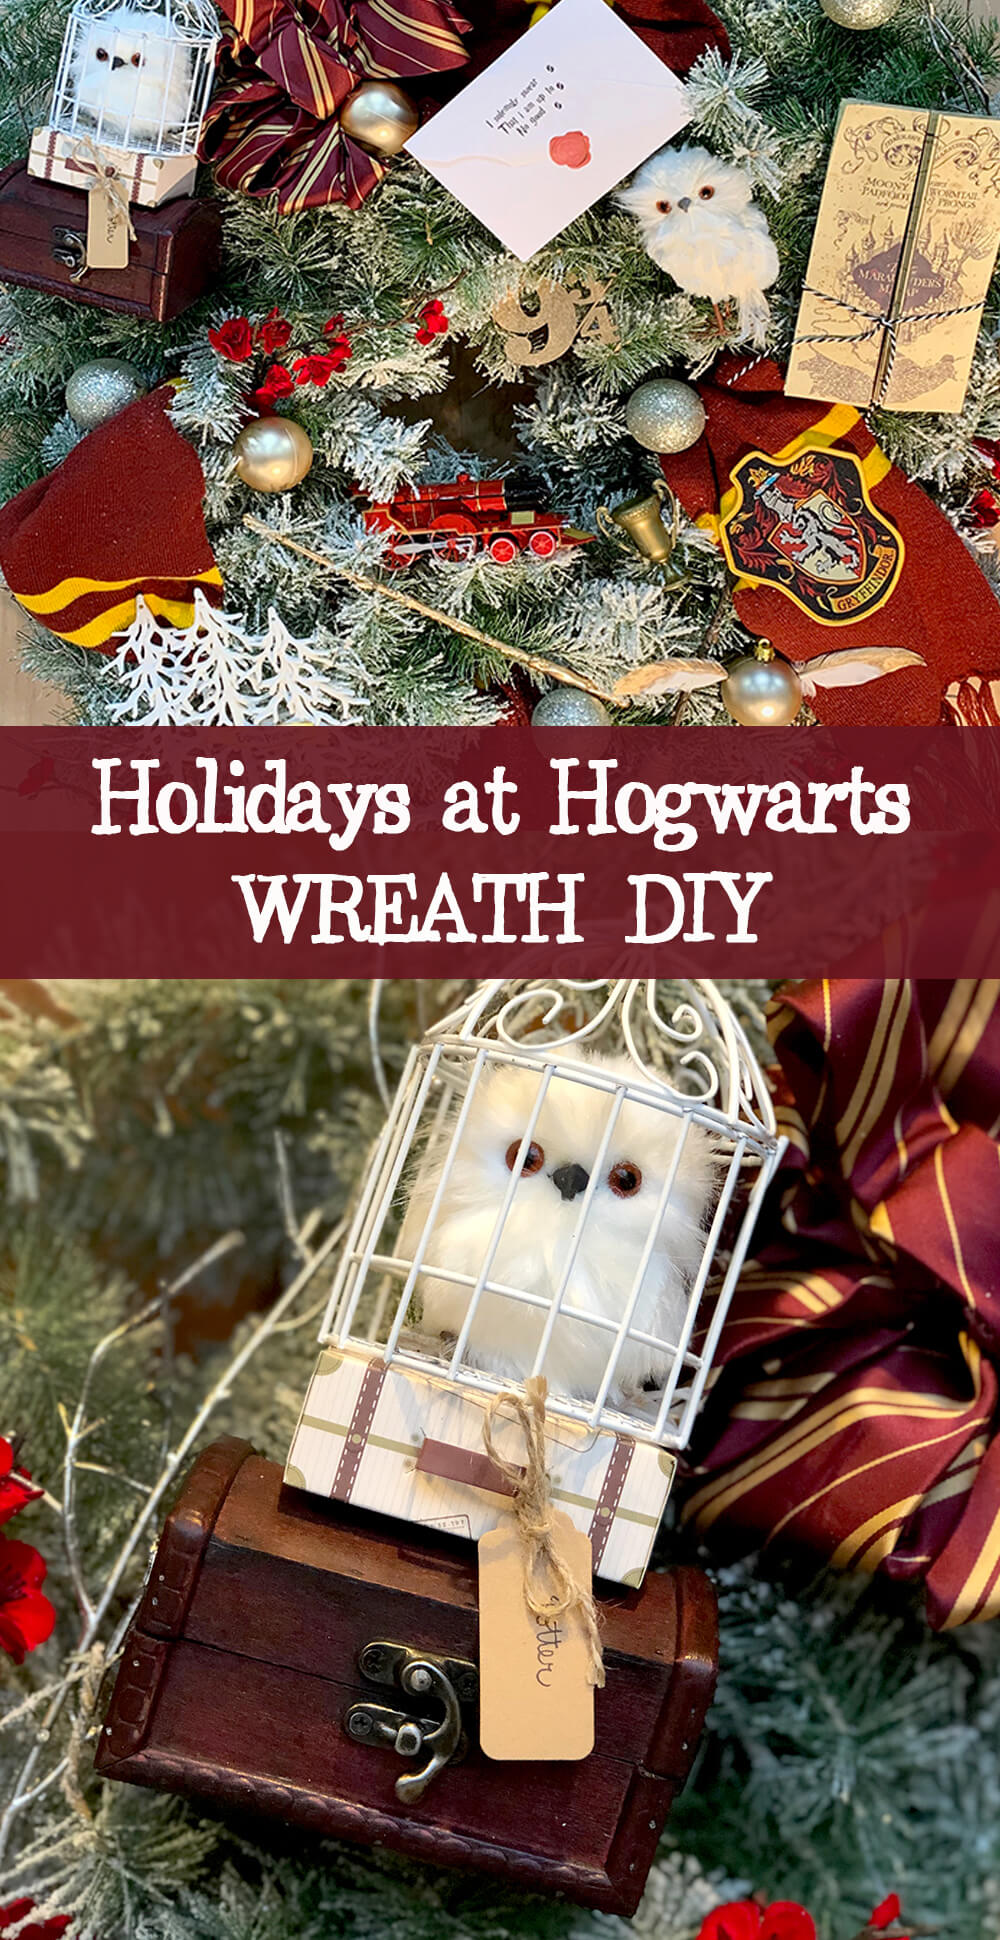 Holidays at Hogwarts Wreath DIY